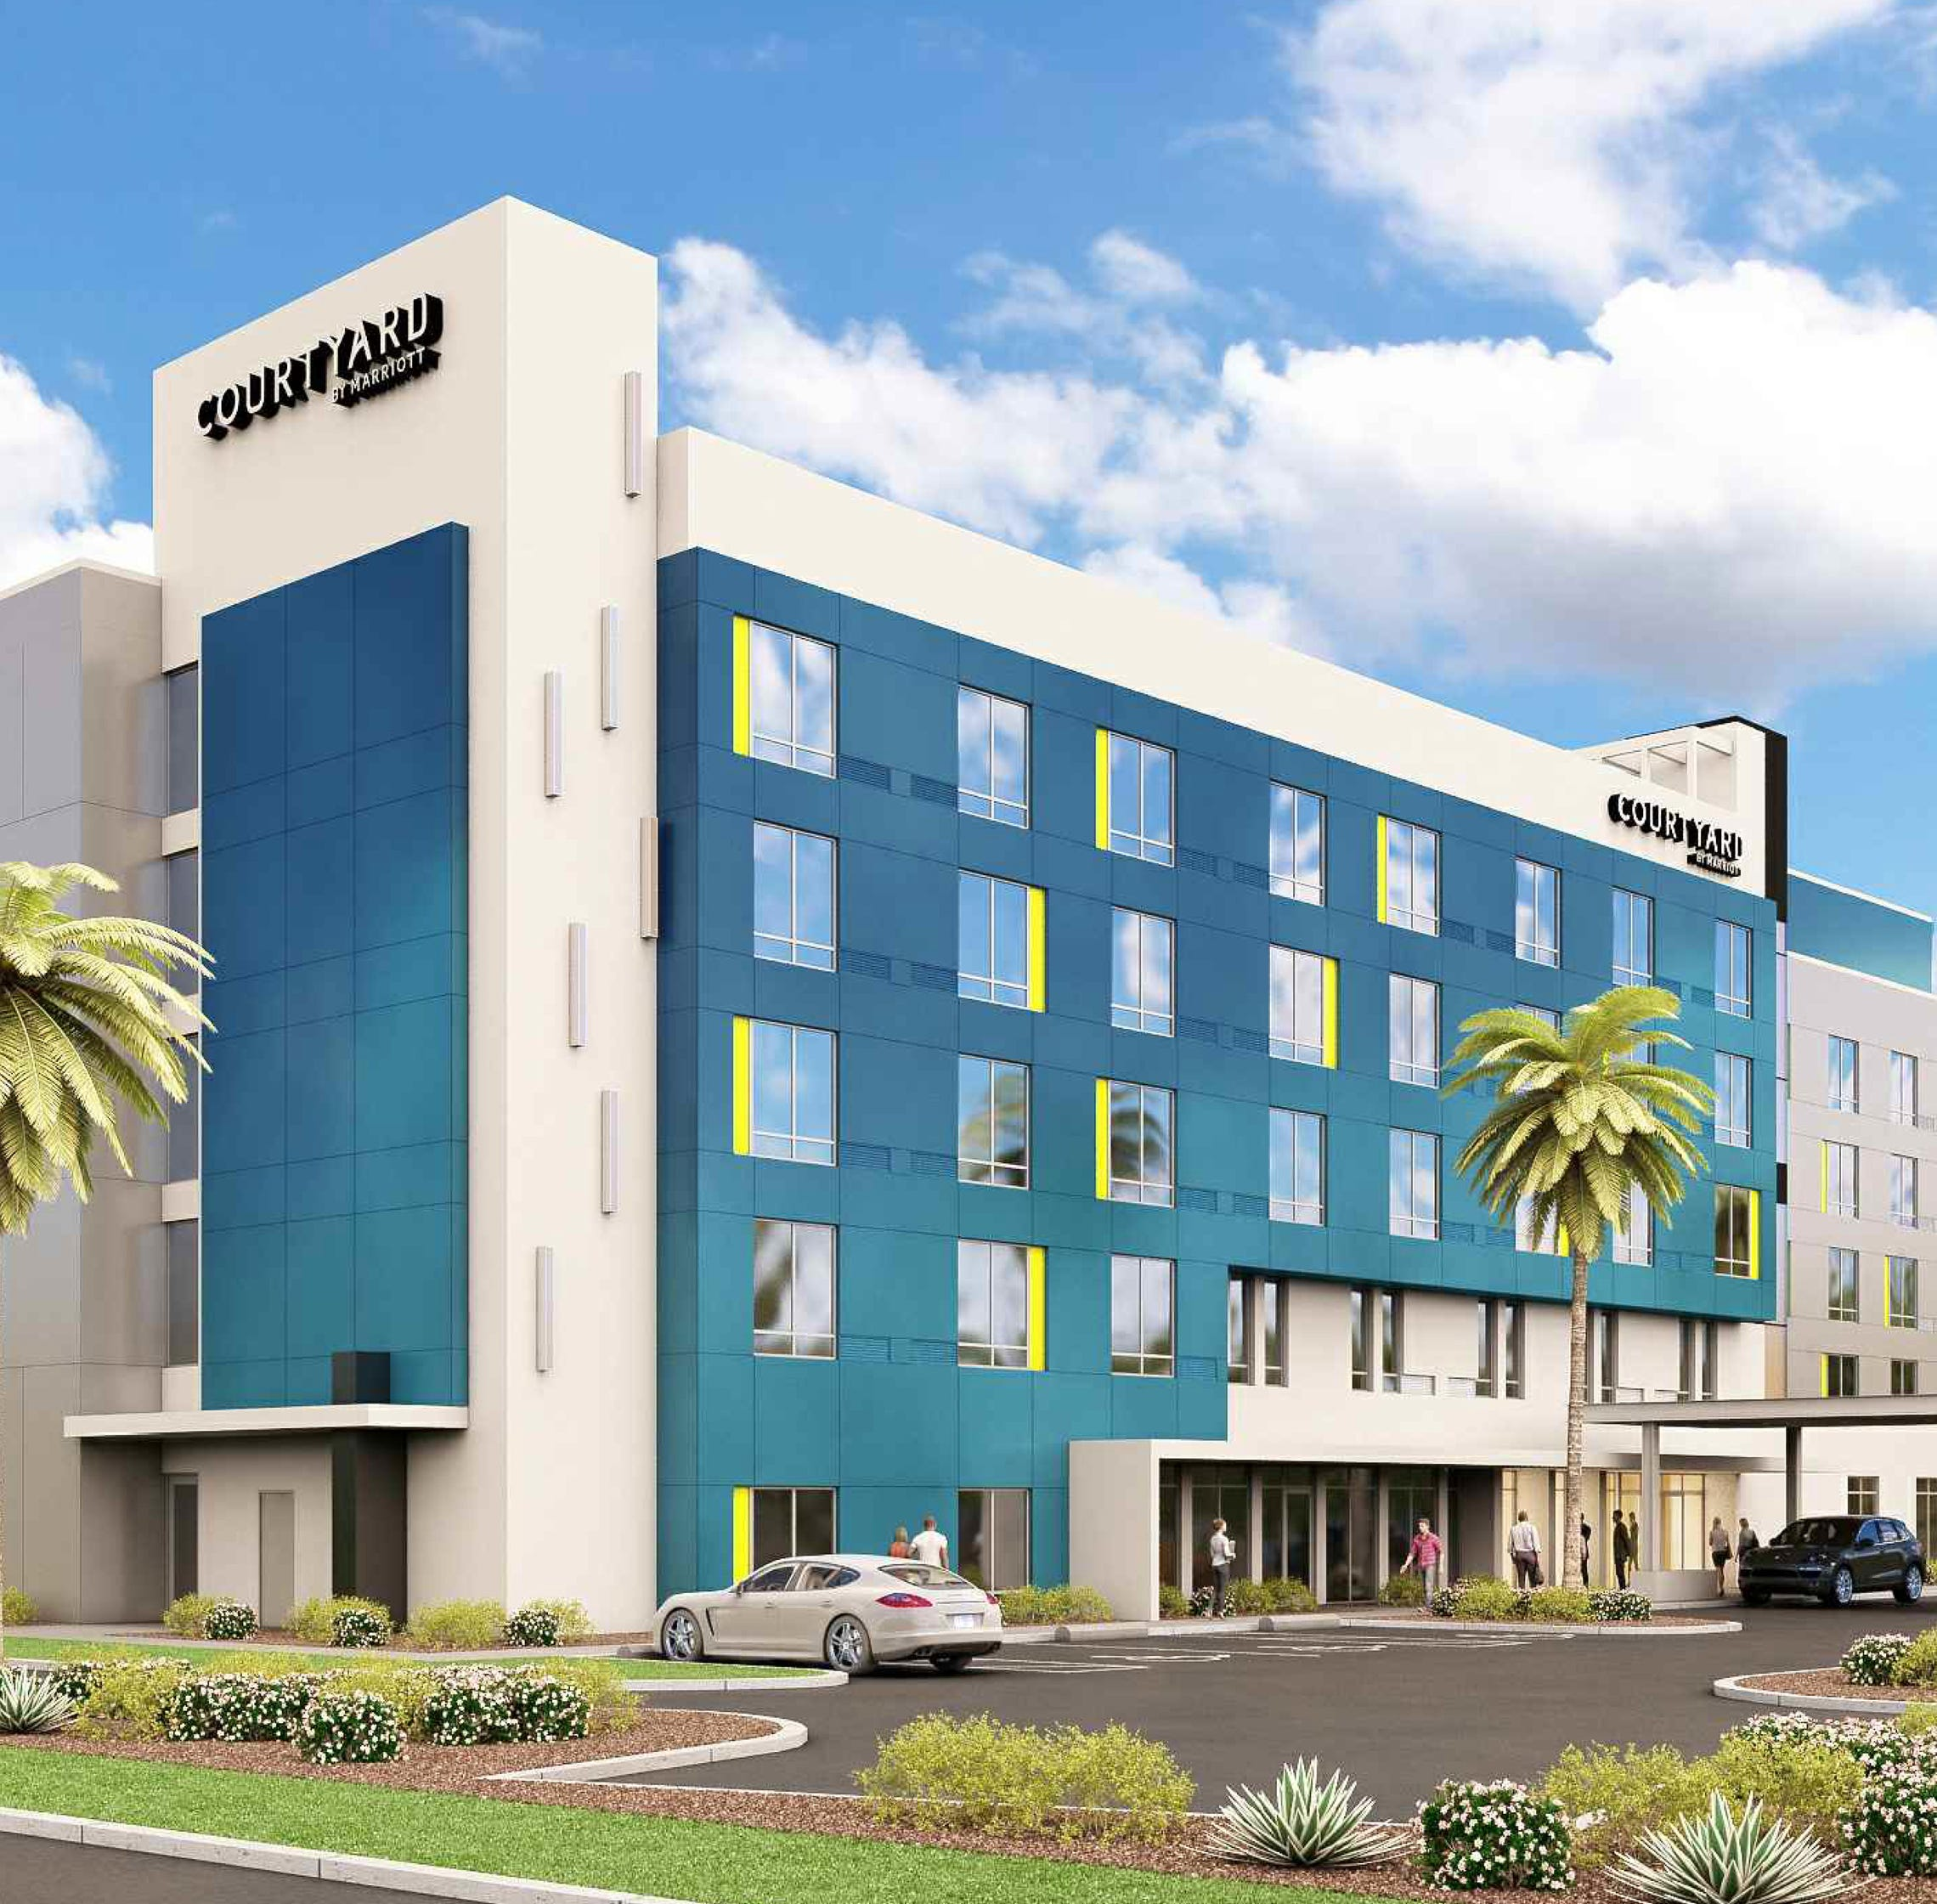 New hotel overlooking Kennedy Space Center to rise in Titusville